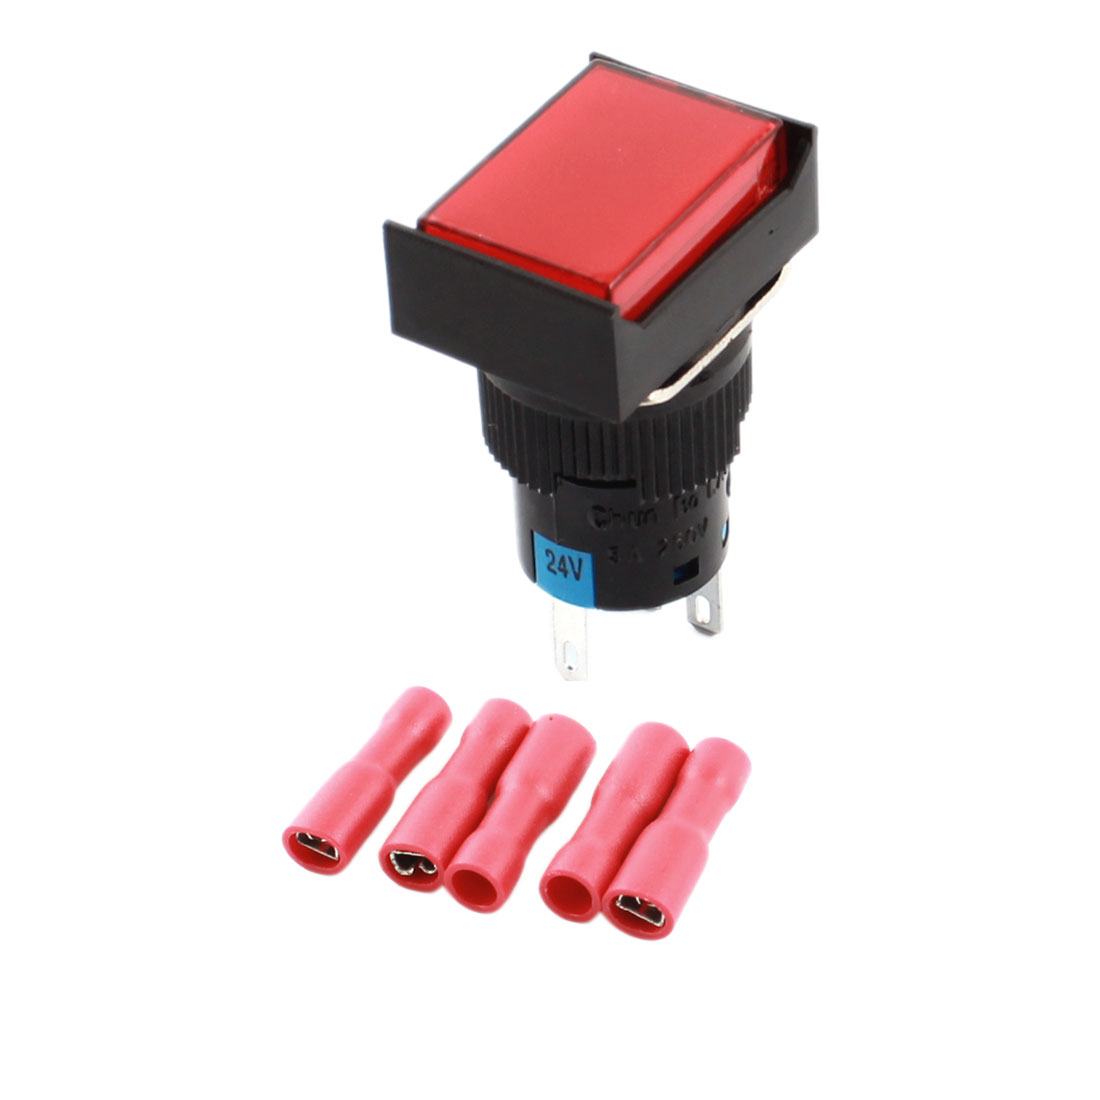 DC24V Red Light Lamp Momentary Pushbutton Switch + 5 x Crimp Connectors